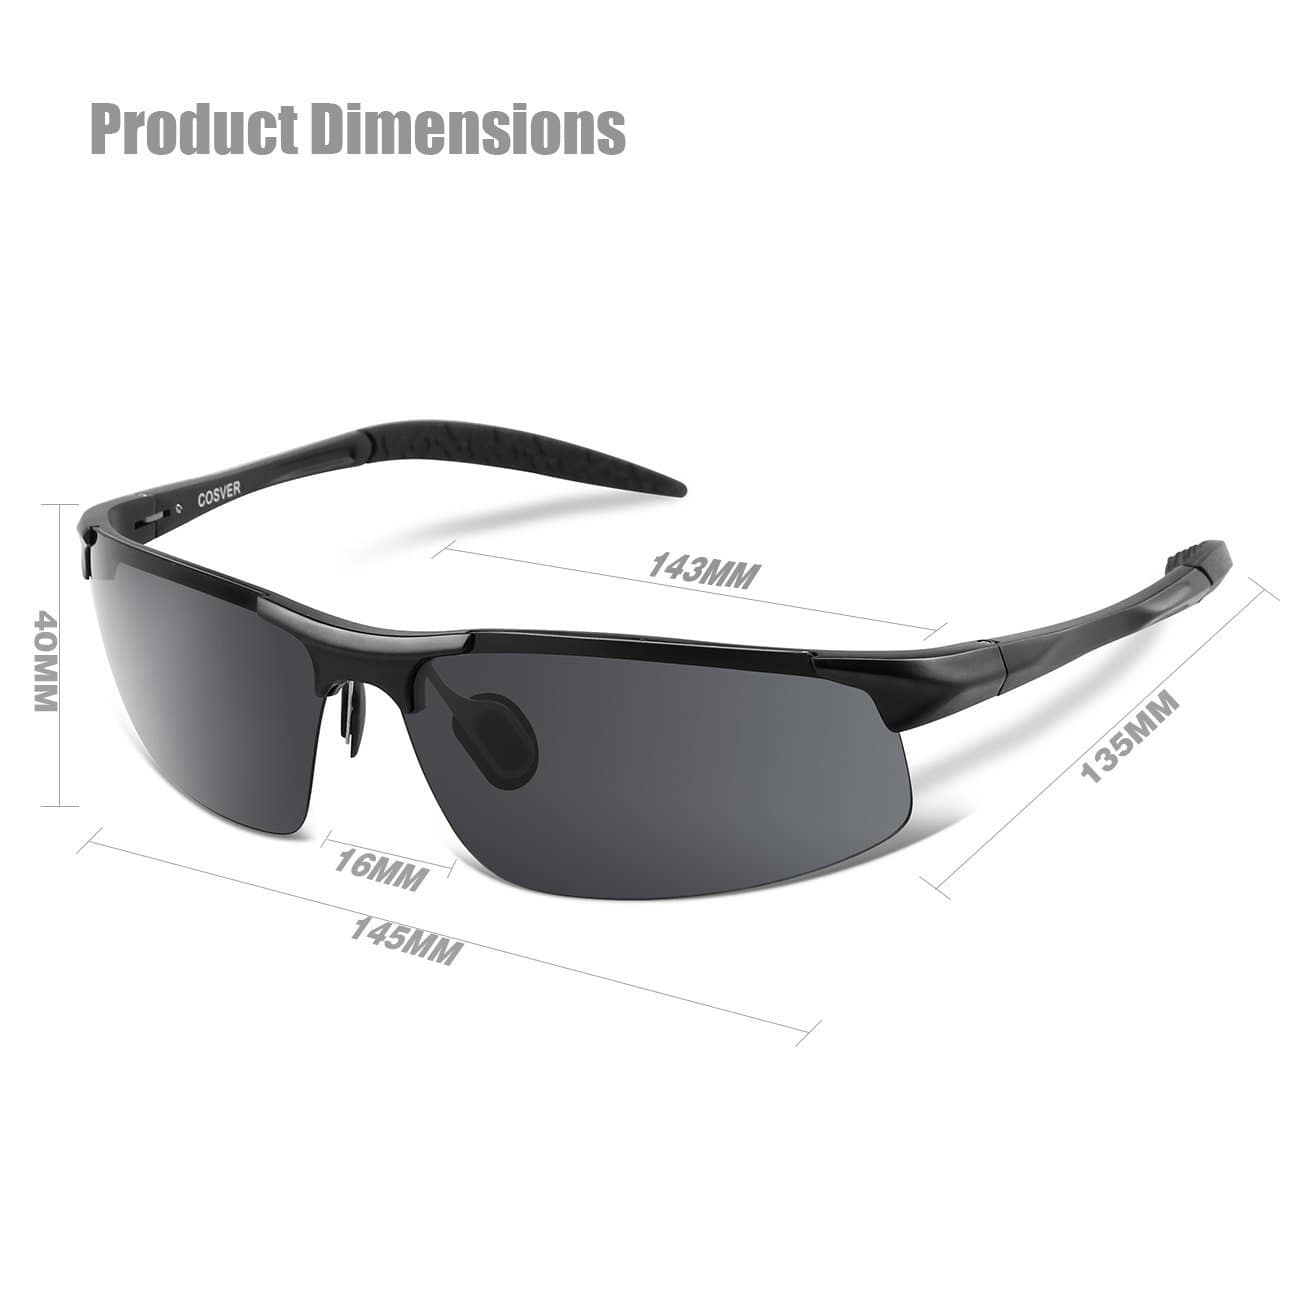 d78df94123 COSVER Men s Sports Style Polarized Sunglasses for Driving Cycling Running  Fishing Golf